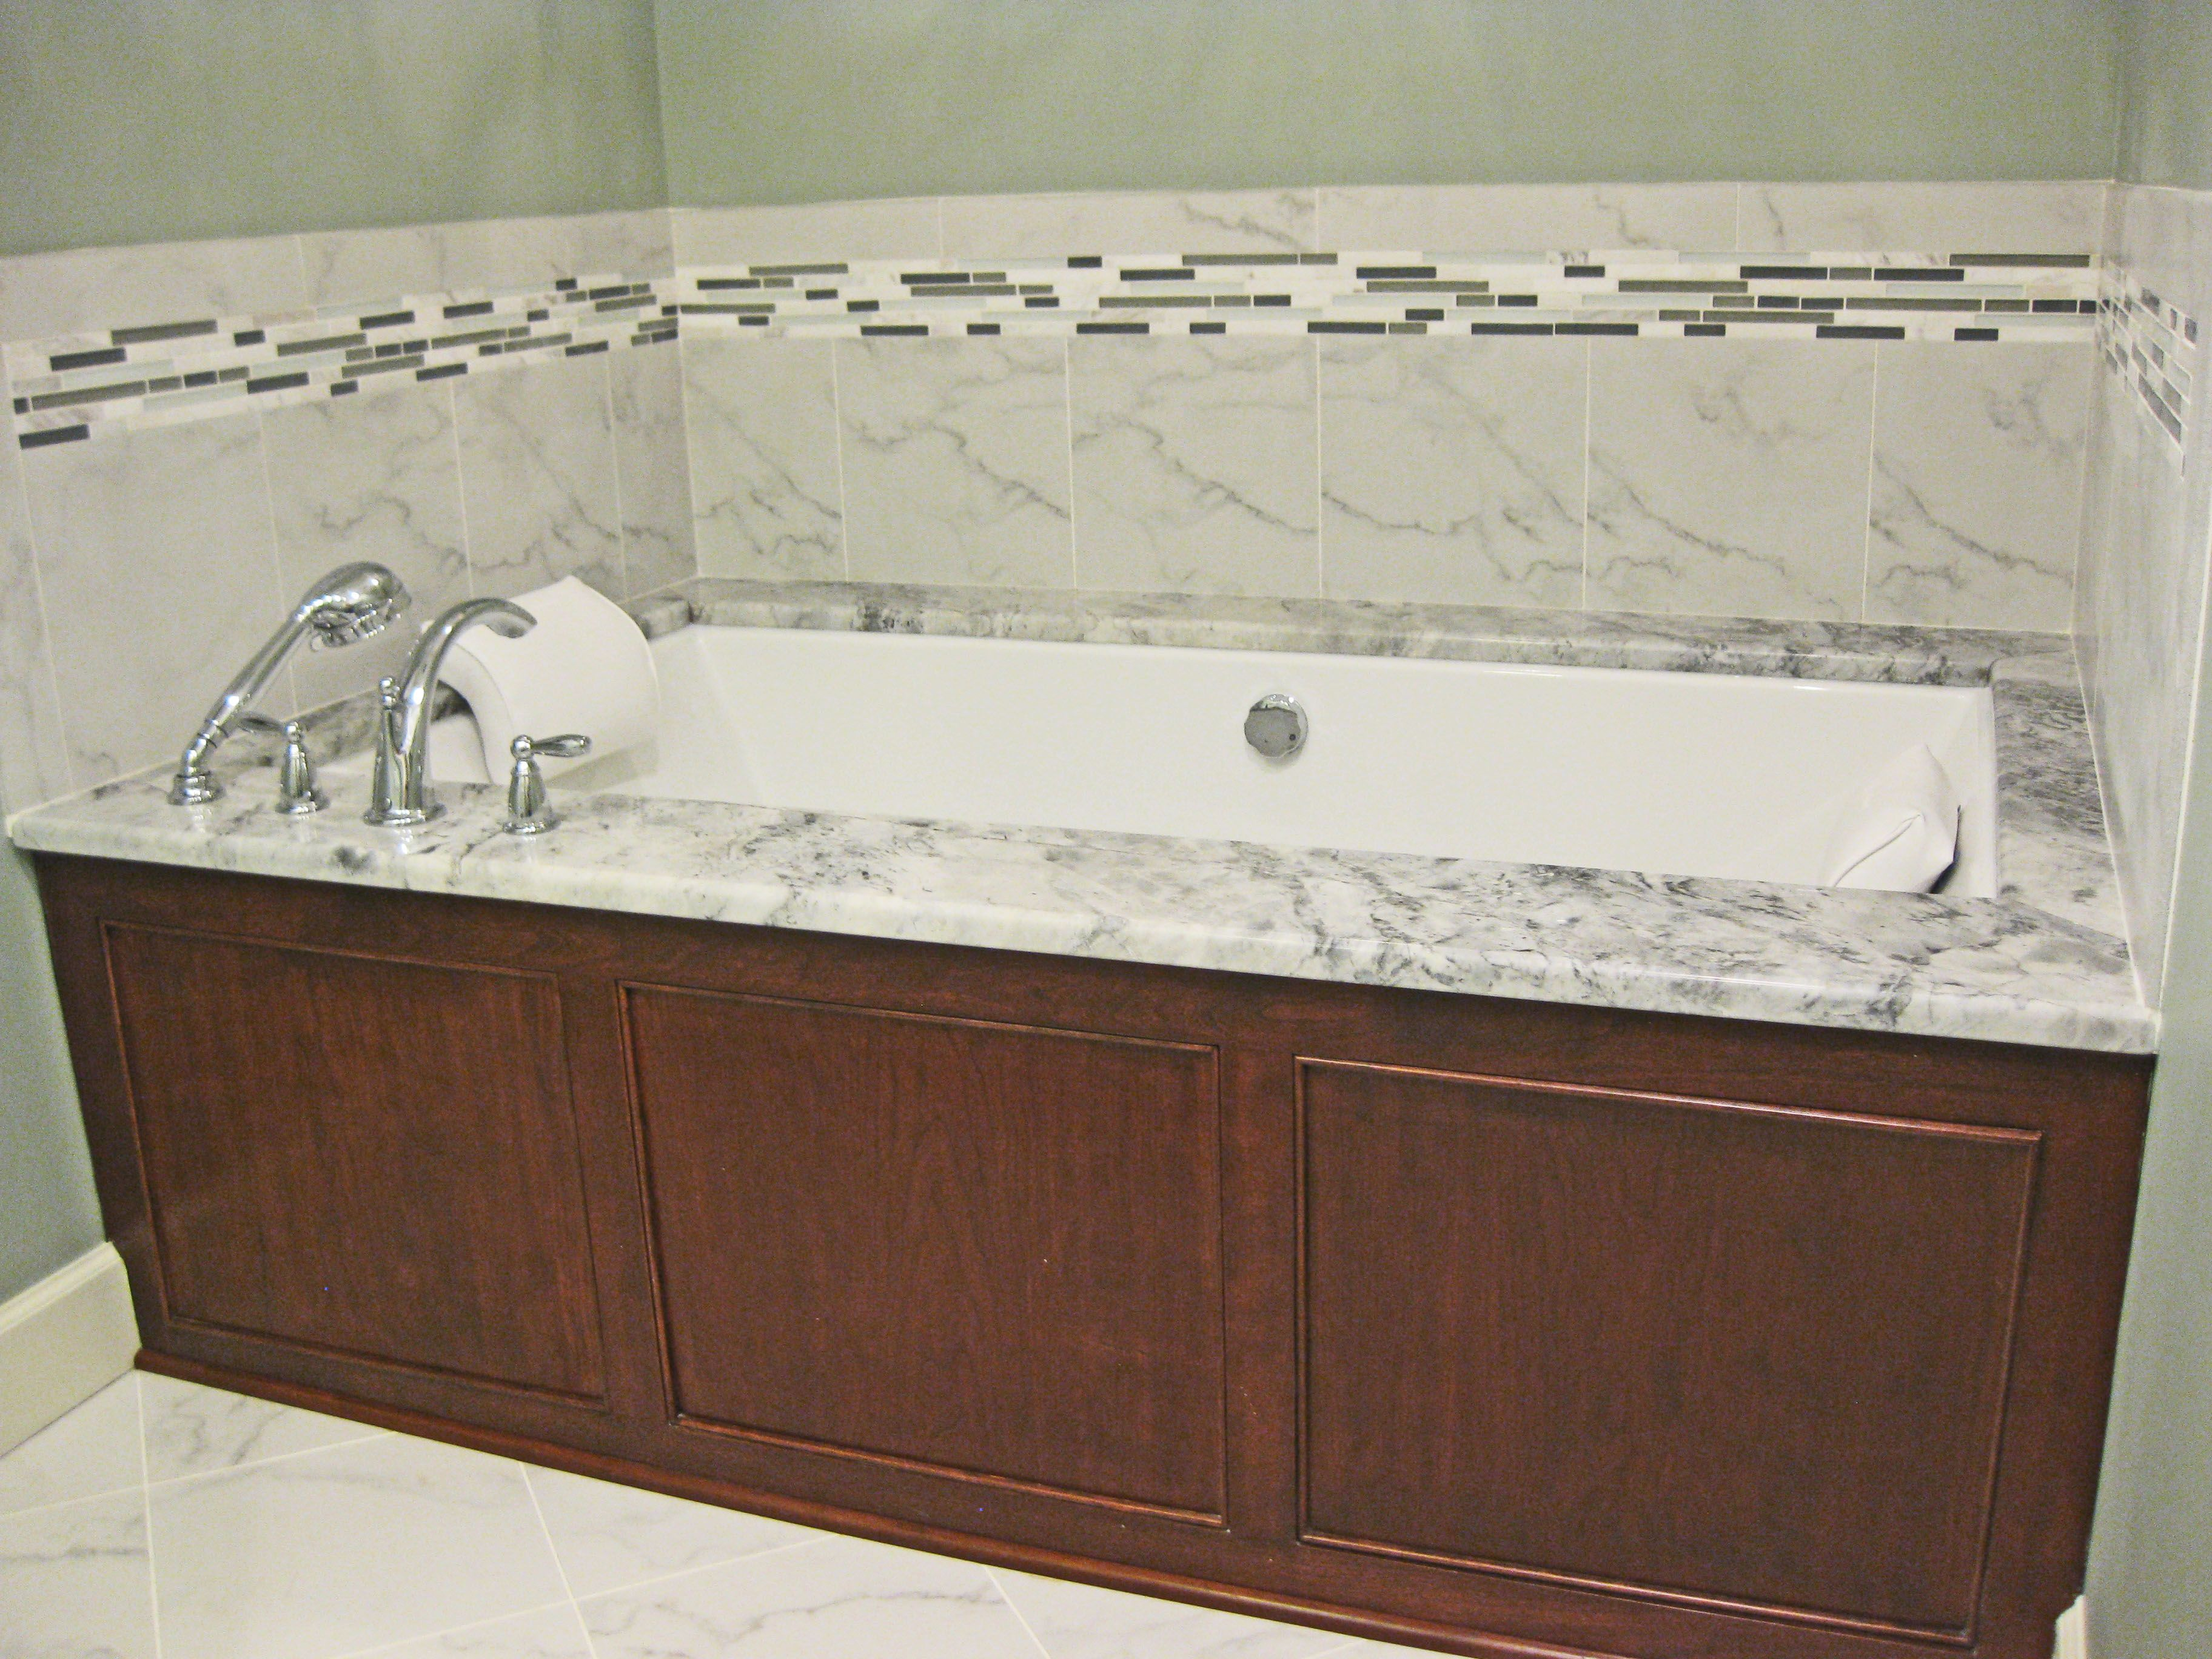 Undermount jacuzzi tub with super white granite surround and white ...